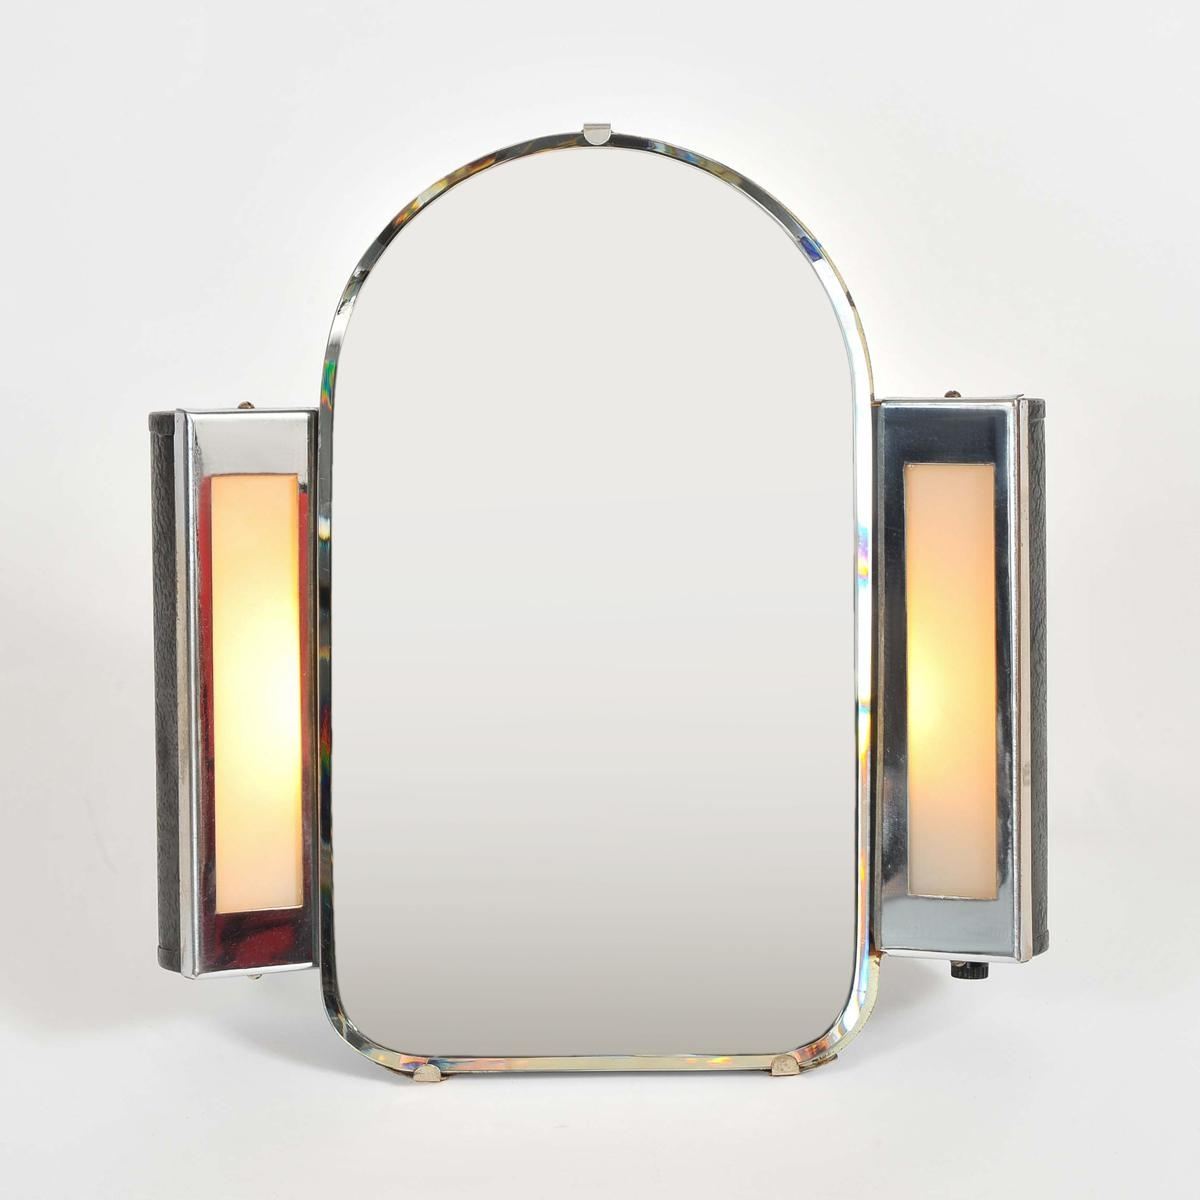 1930S Us Art Deco Illuminated Dressing Table Mirror | Valerie Wade With Illuminated Dressing Table Mirror (View 6 of 20)